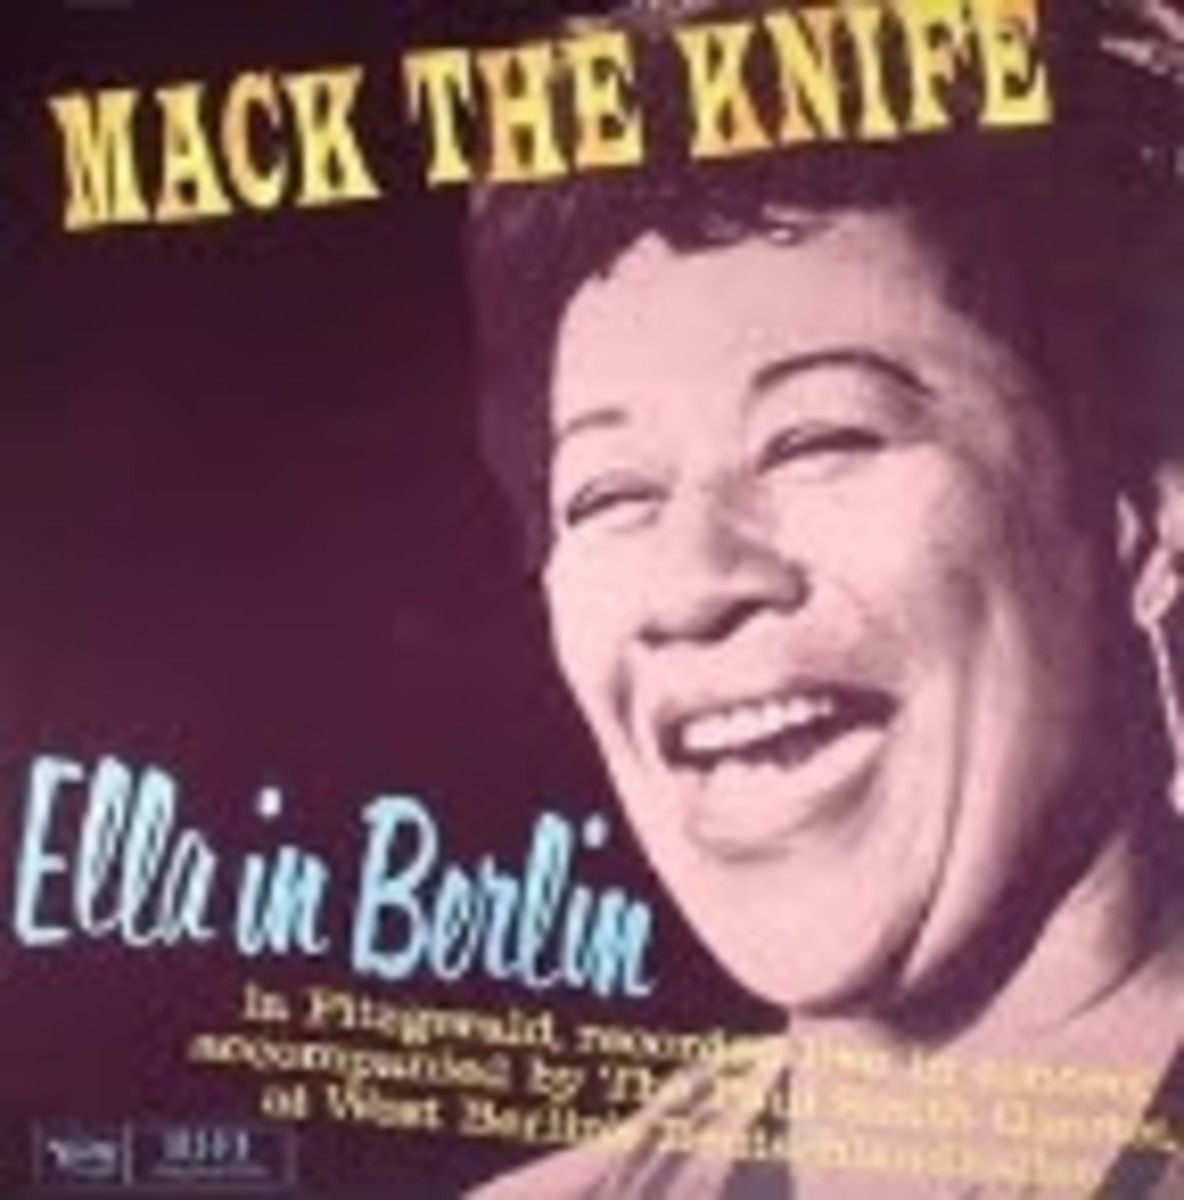 https://www.amazon.com/Ella-Berlin-Mack-Knife-FITZGERALD/dp/B07FYDKY4M/ref=as_li_ss_tl?keywords=Mack+The+Knife:+Ella+In+Berlin&qid=1550870423&s=music&sr=1-1&linkCode=ll1&tag=goldminemag.com-20&linkId=114bdac7372efdf172196d5c2b6733f3&language=en_US